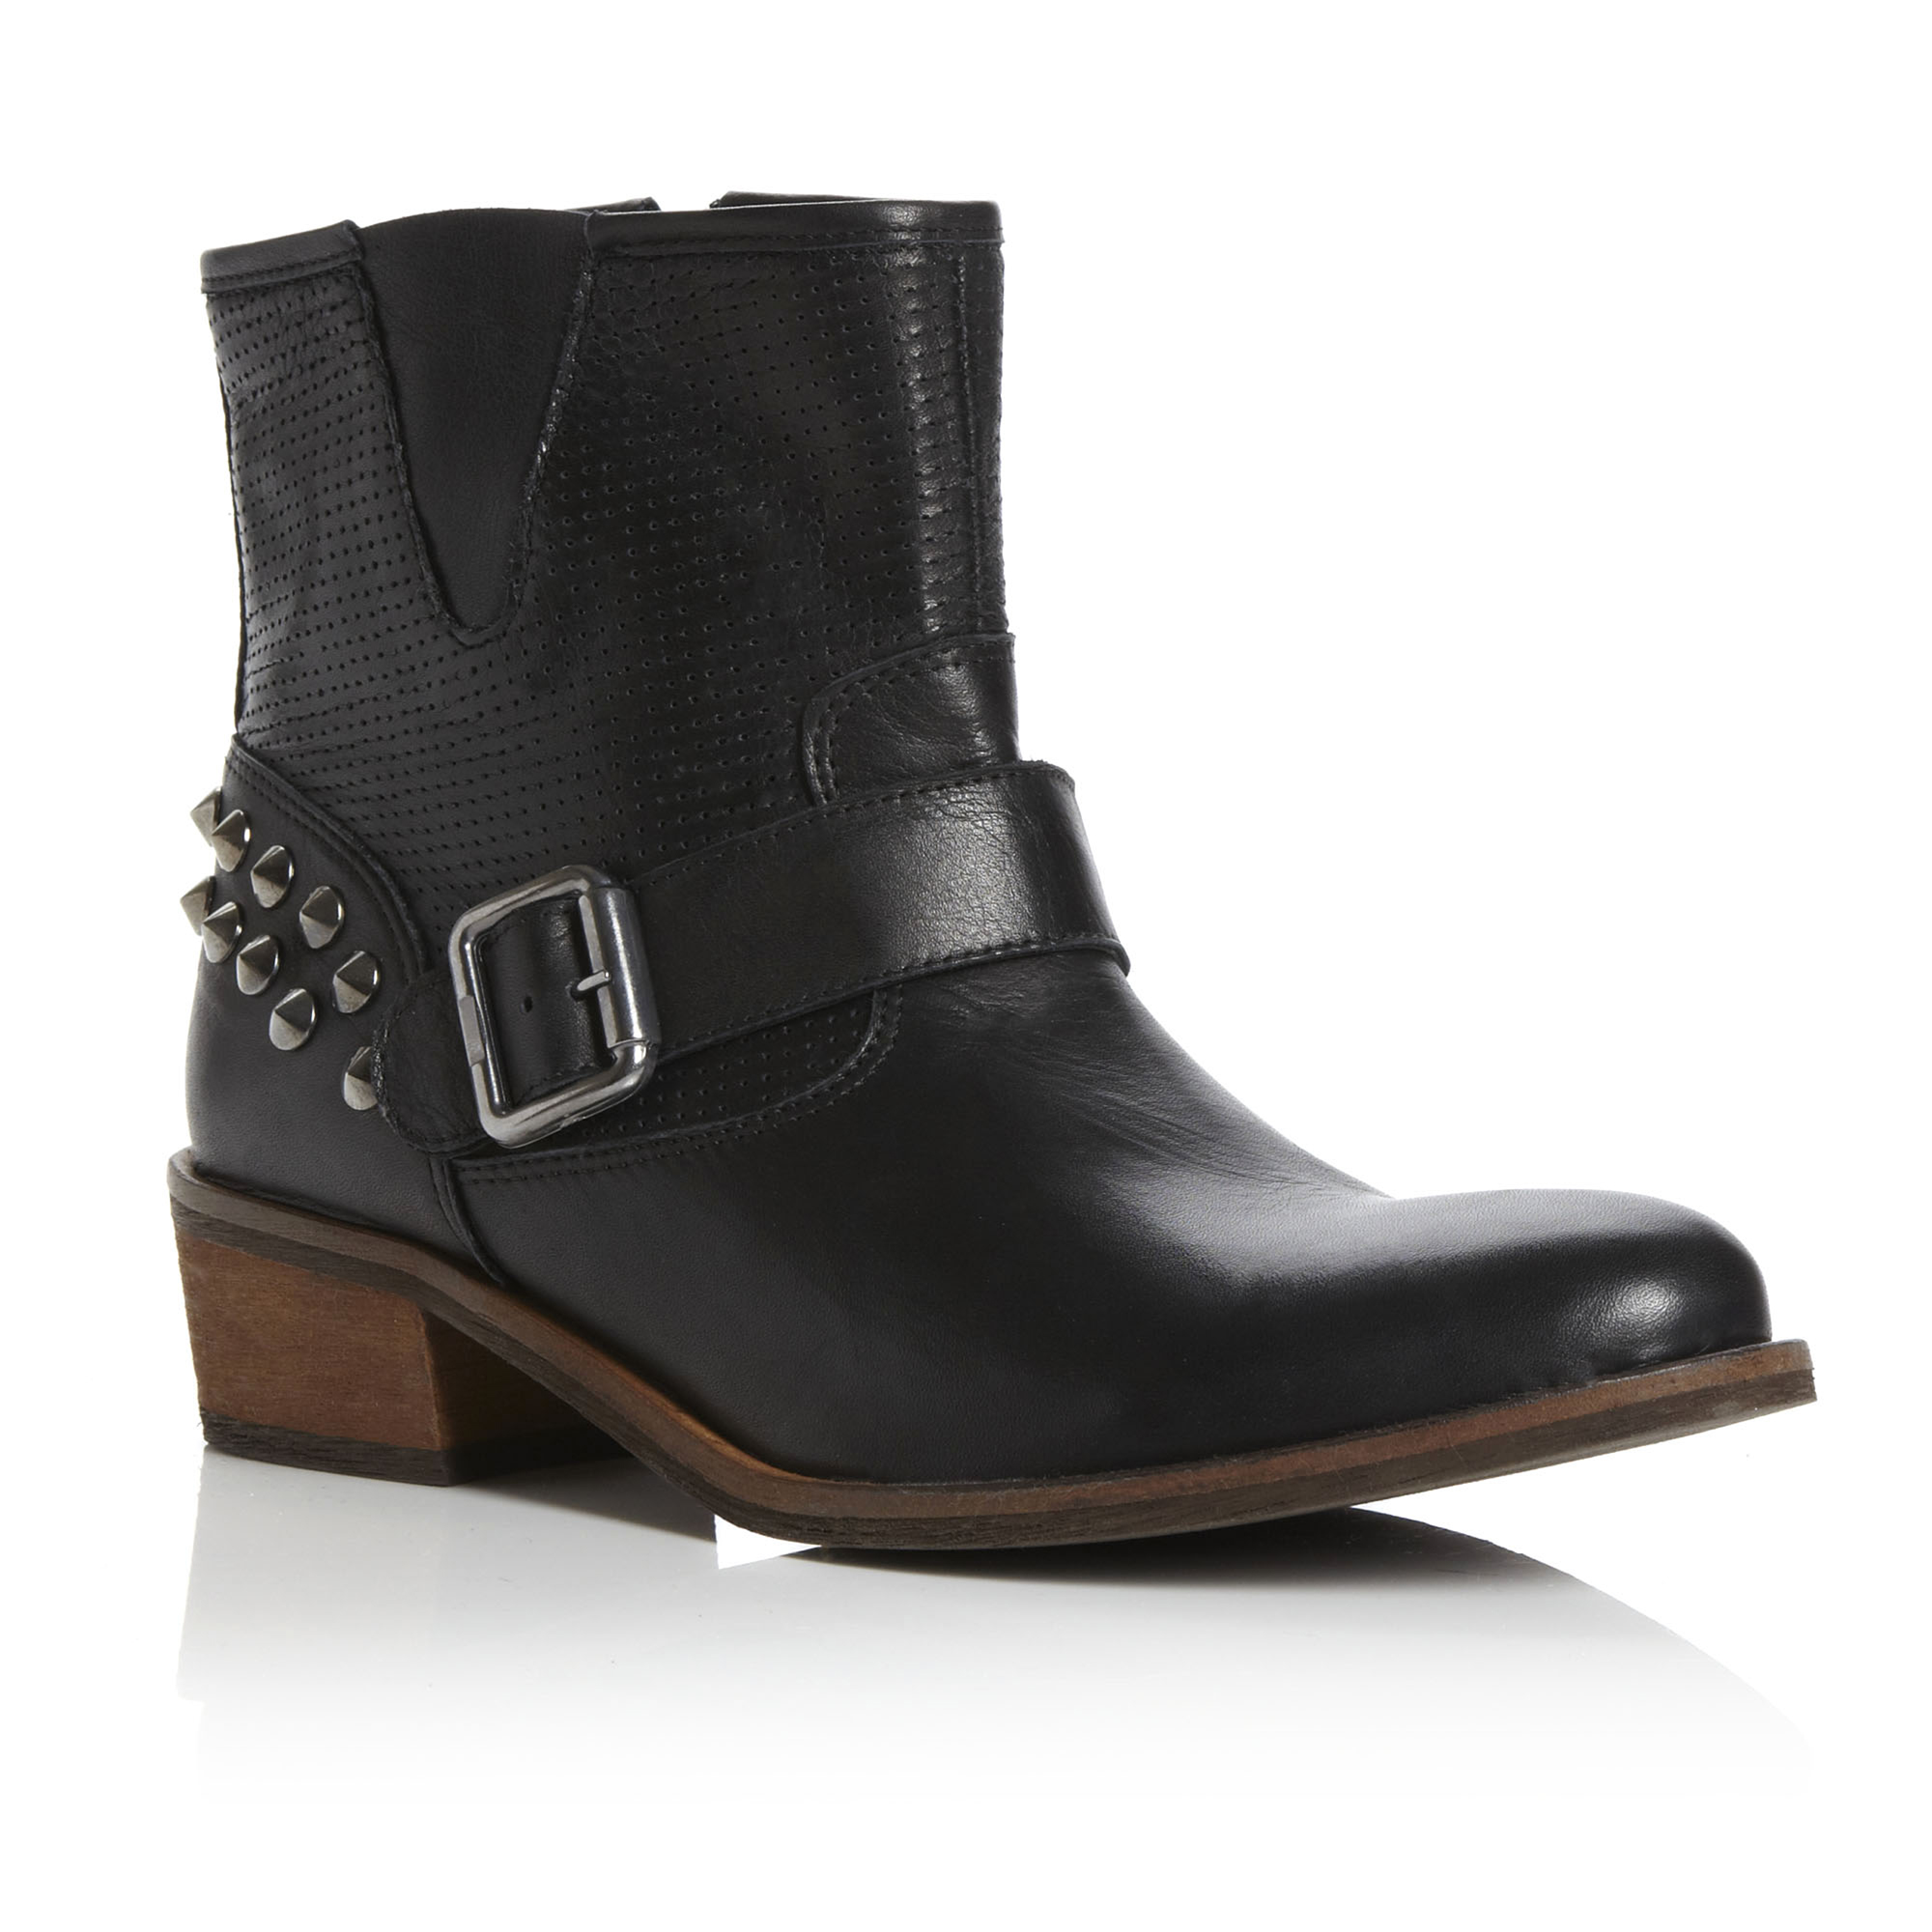 Black Womens Ankle Boots | FP Boots